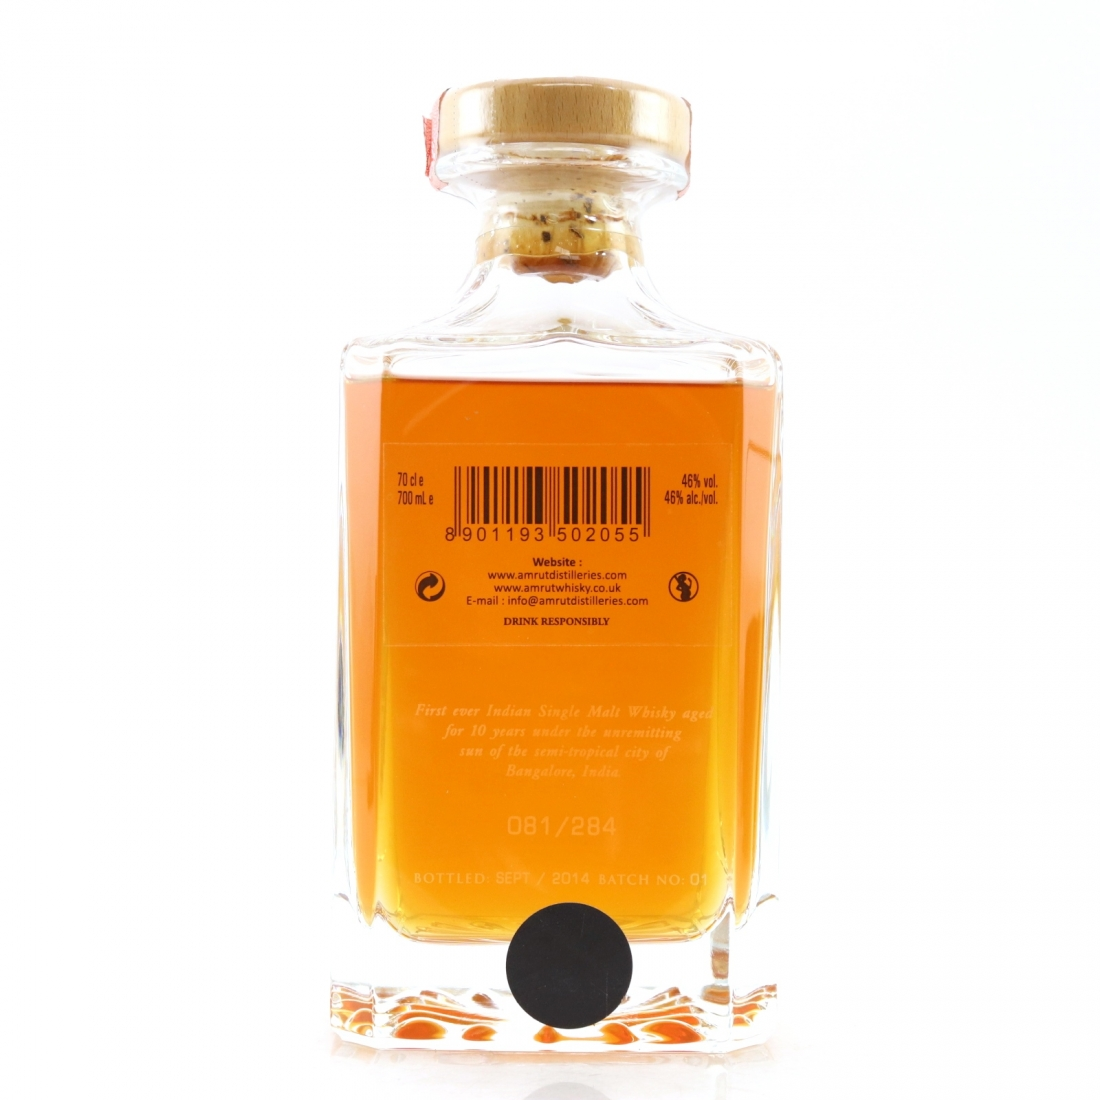 Amrut Greedy Angels 10 Year Old Chairman's Reserve